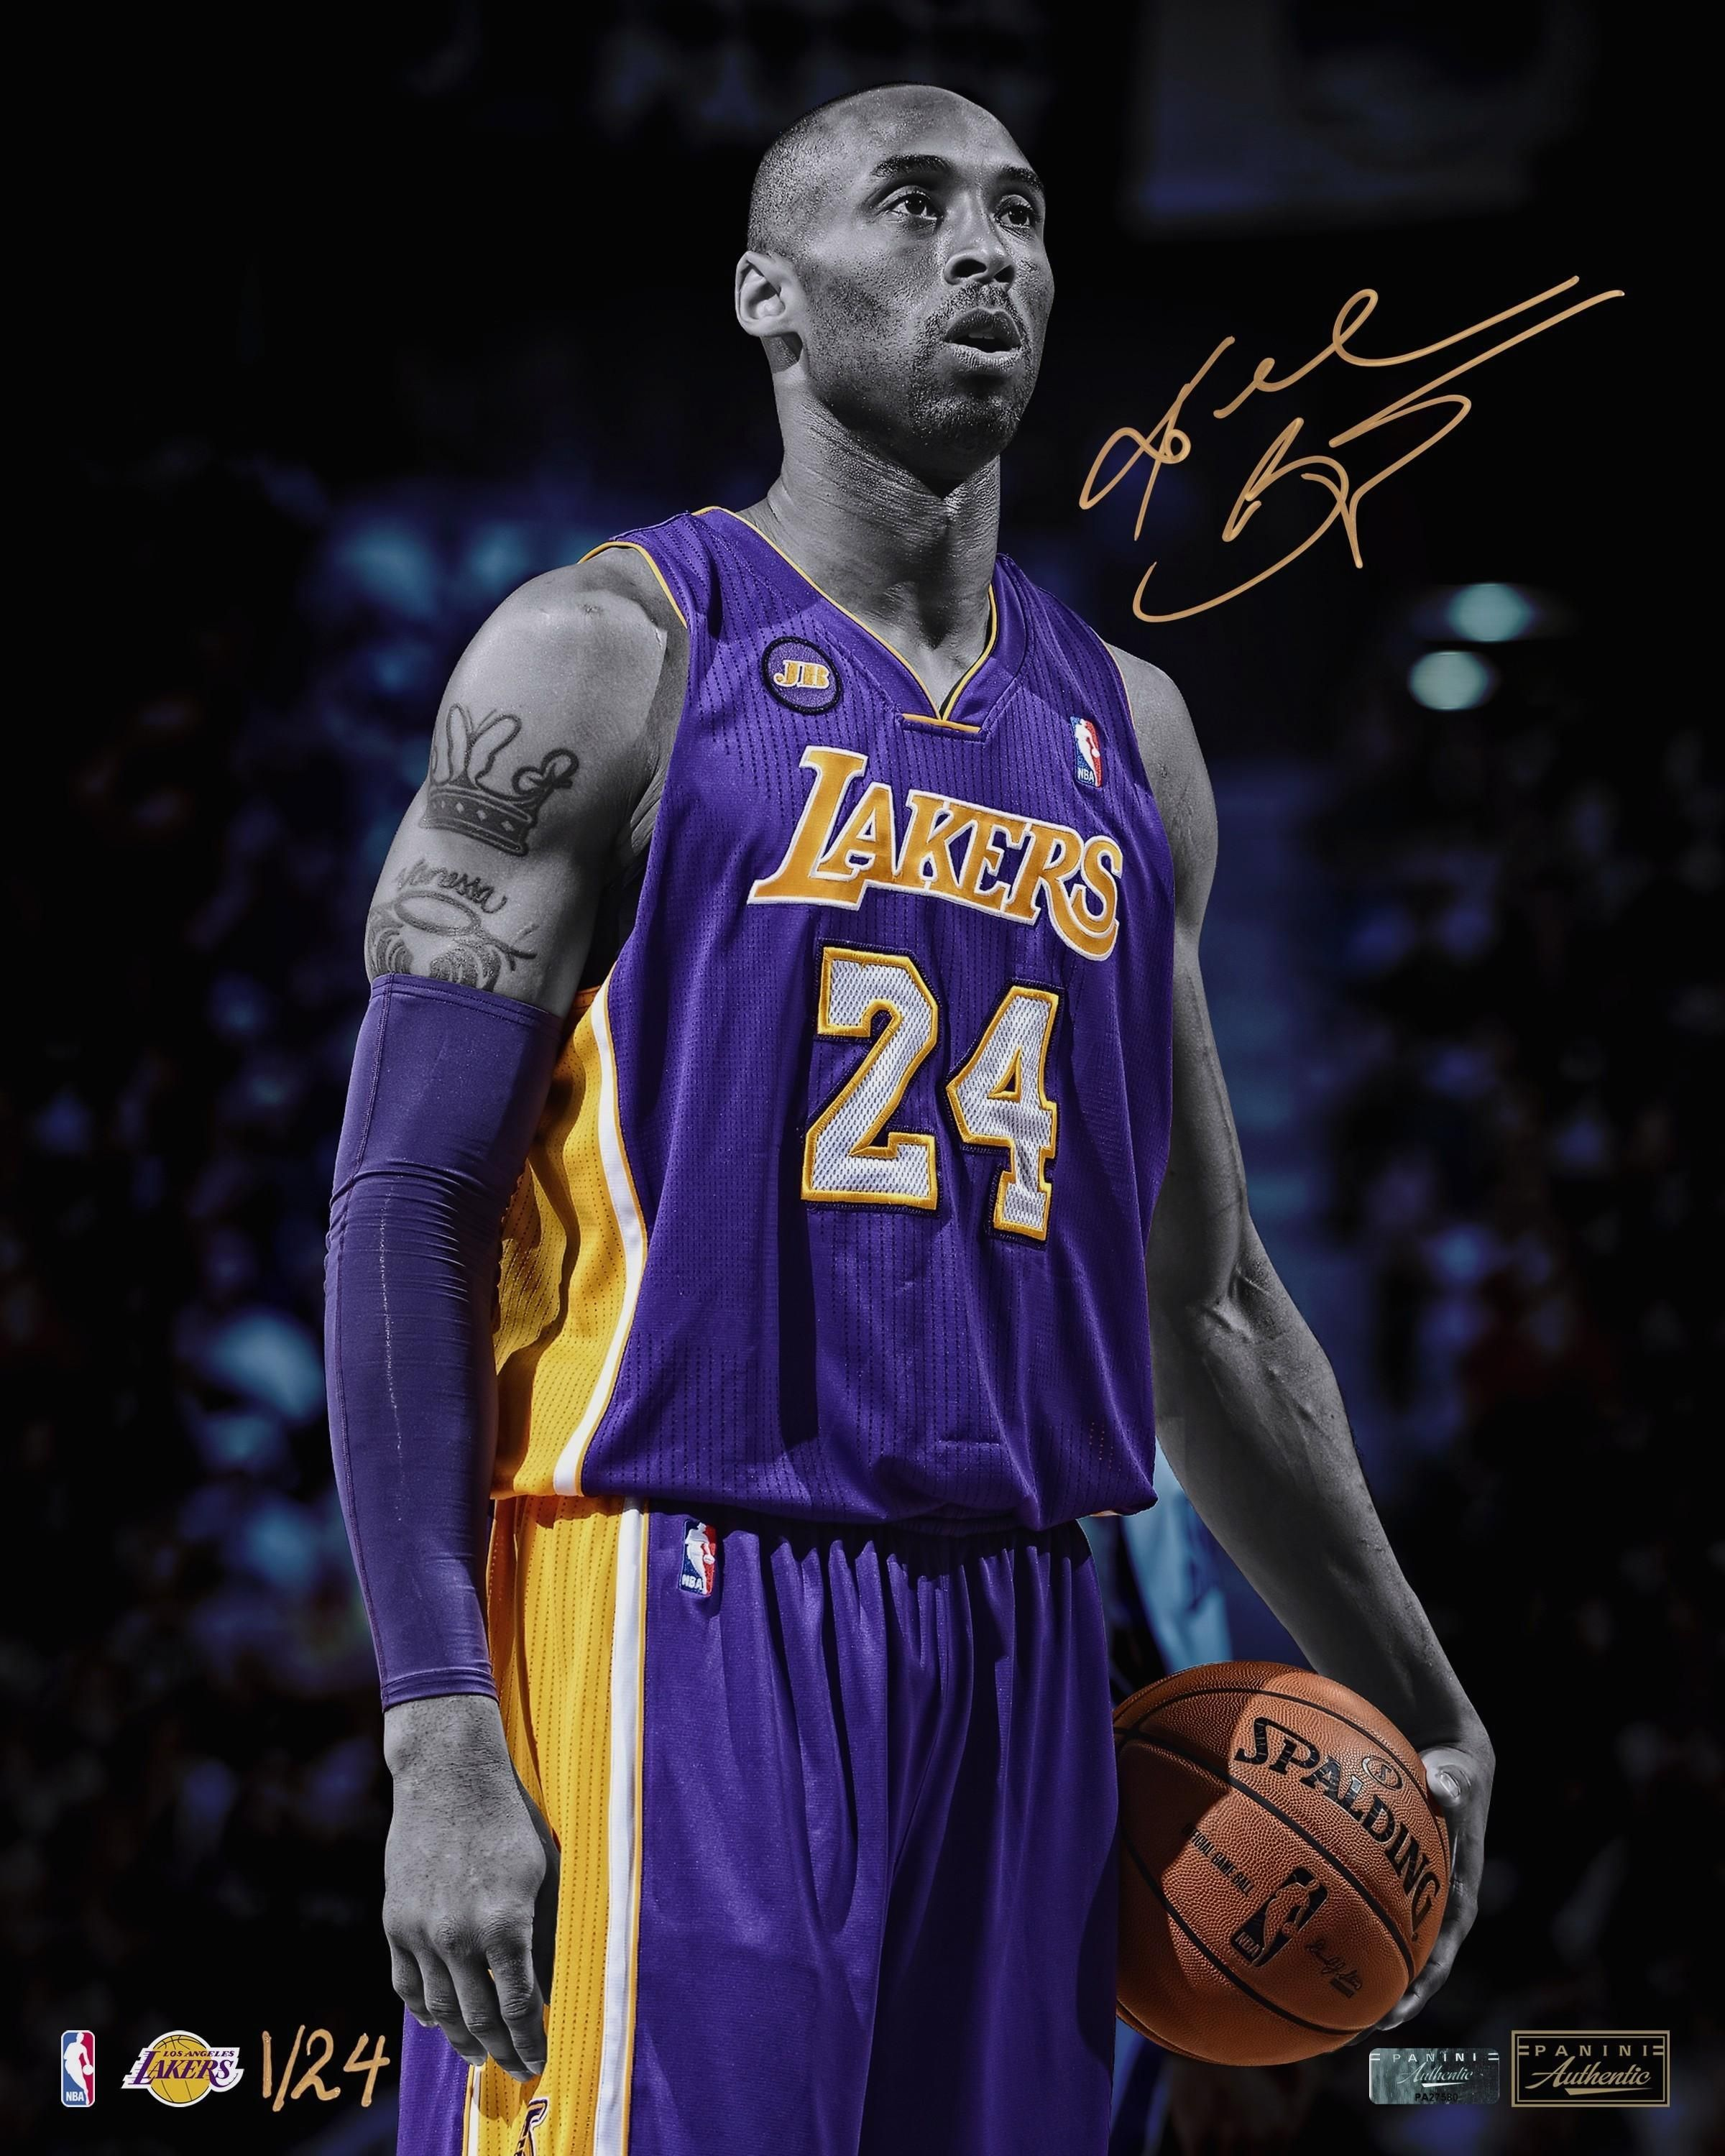 Kobe Bryant Wallpapers HD Download Kobe bryant poster